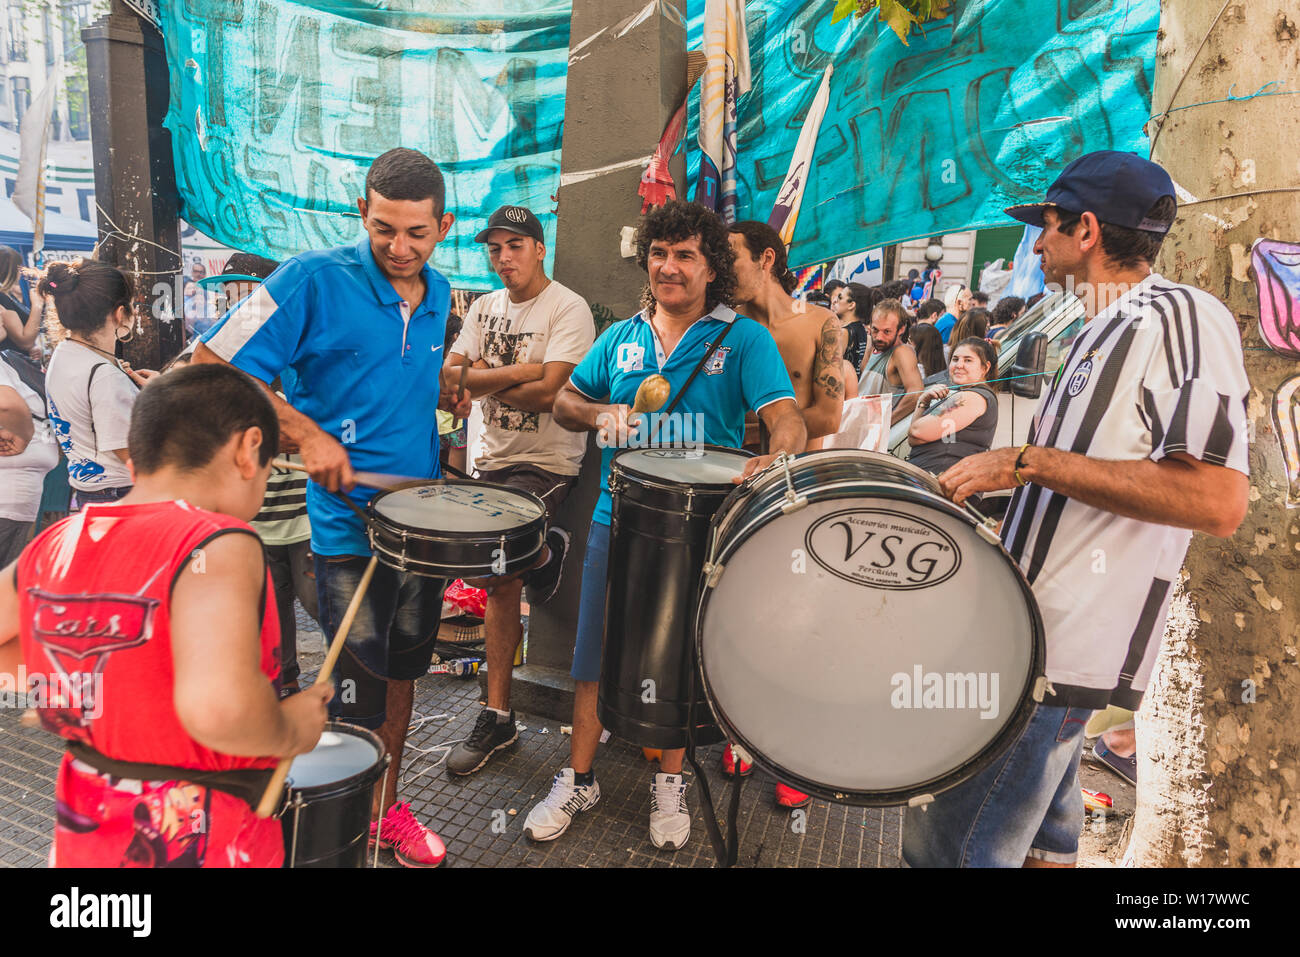 Buenos Aires, Argentina - March 24, 2017: People at Memory day for dictatorship - Stock Image